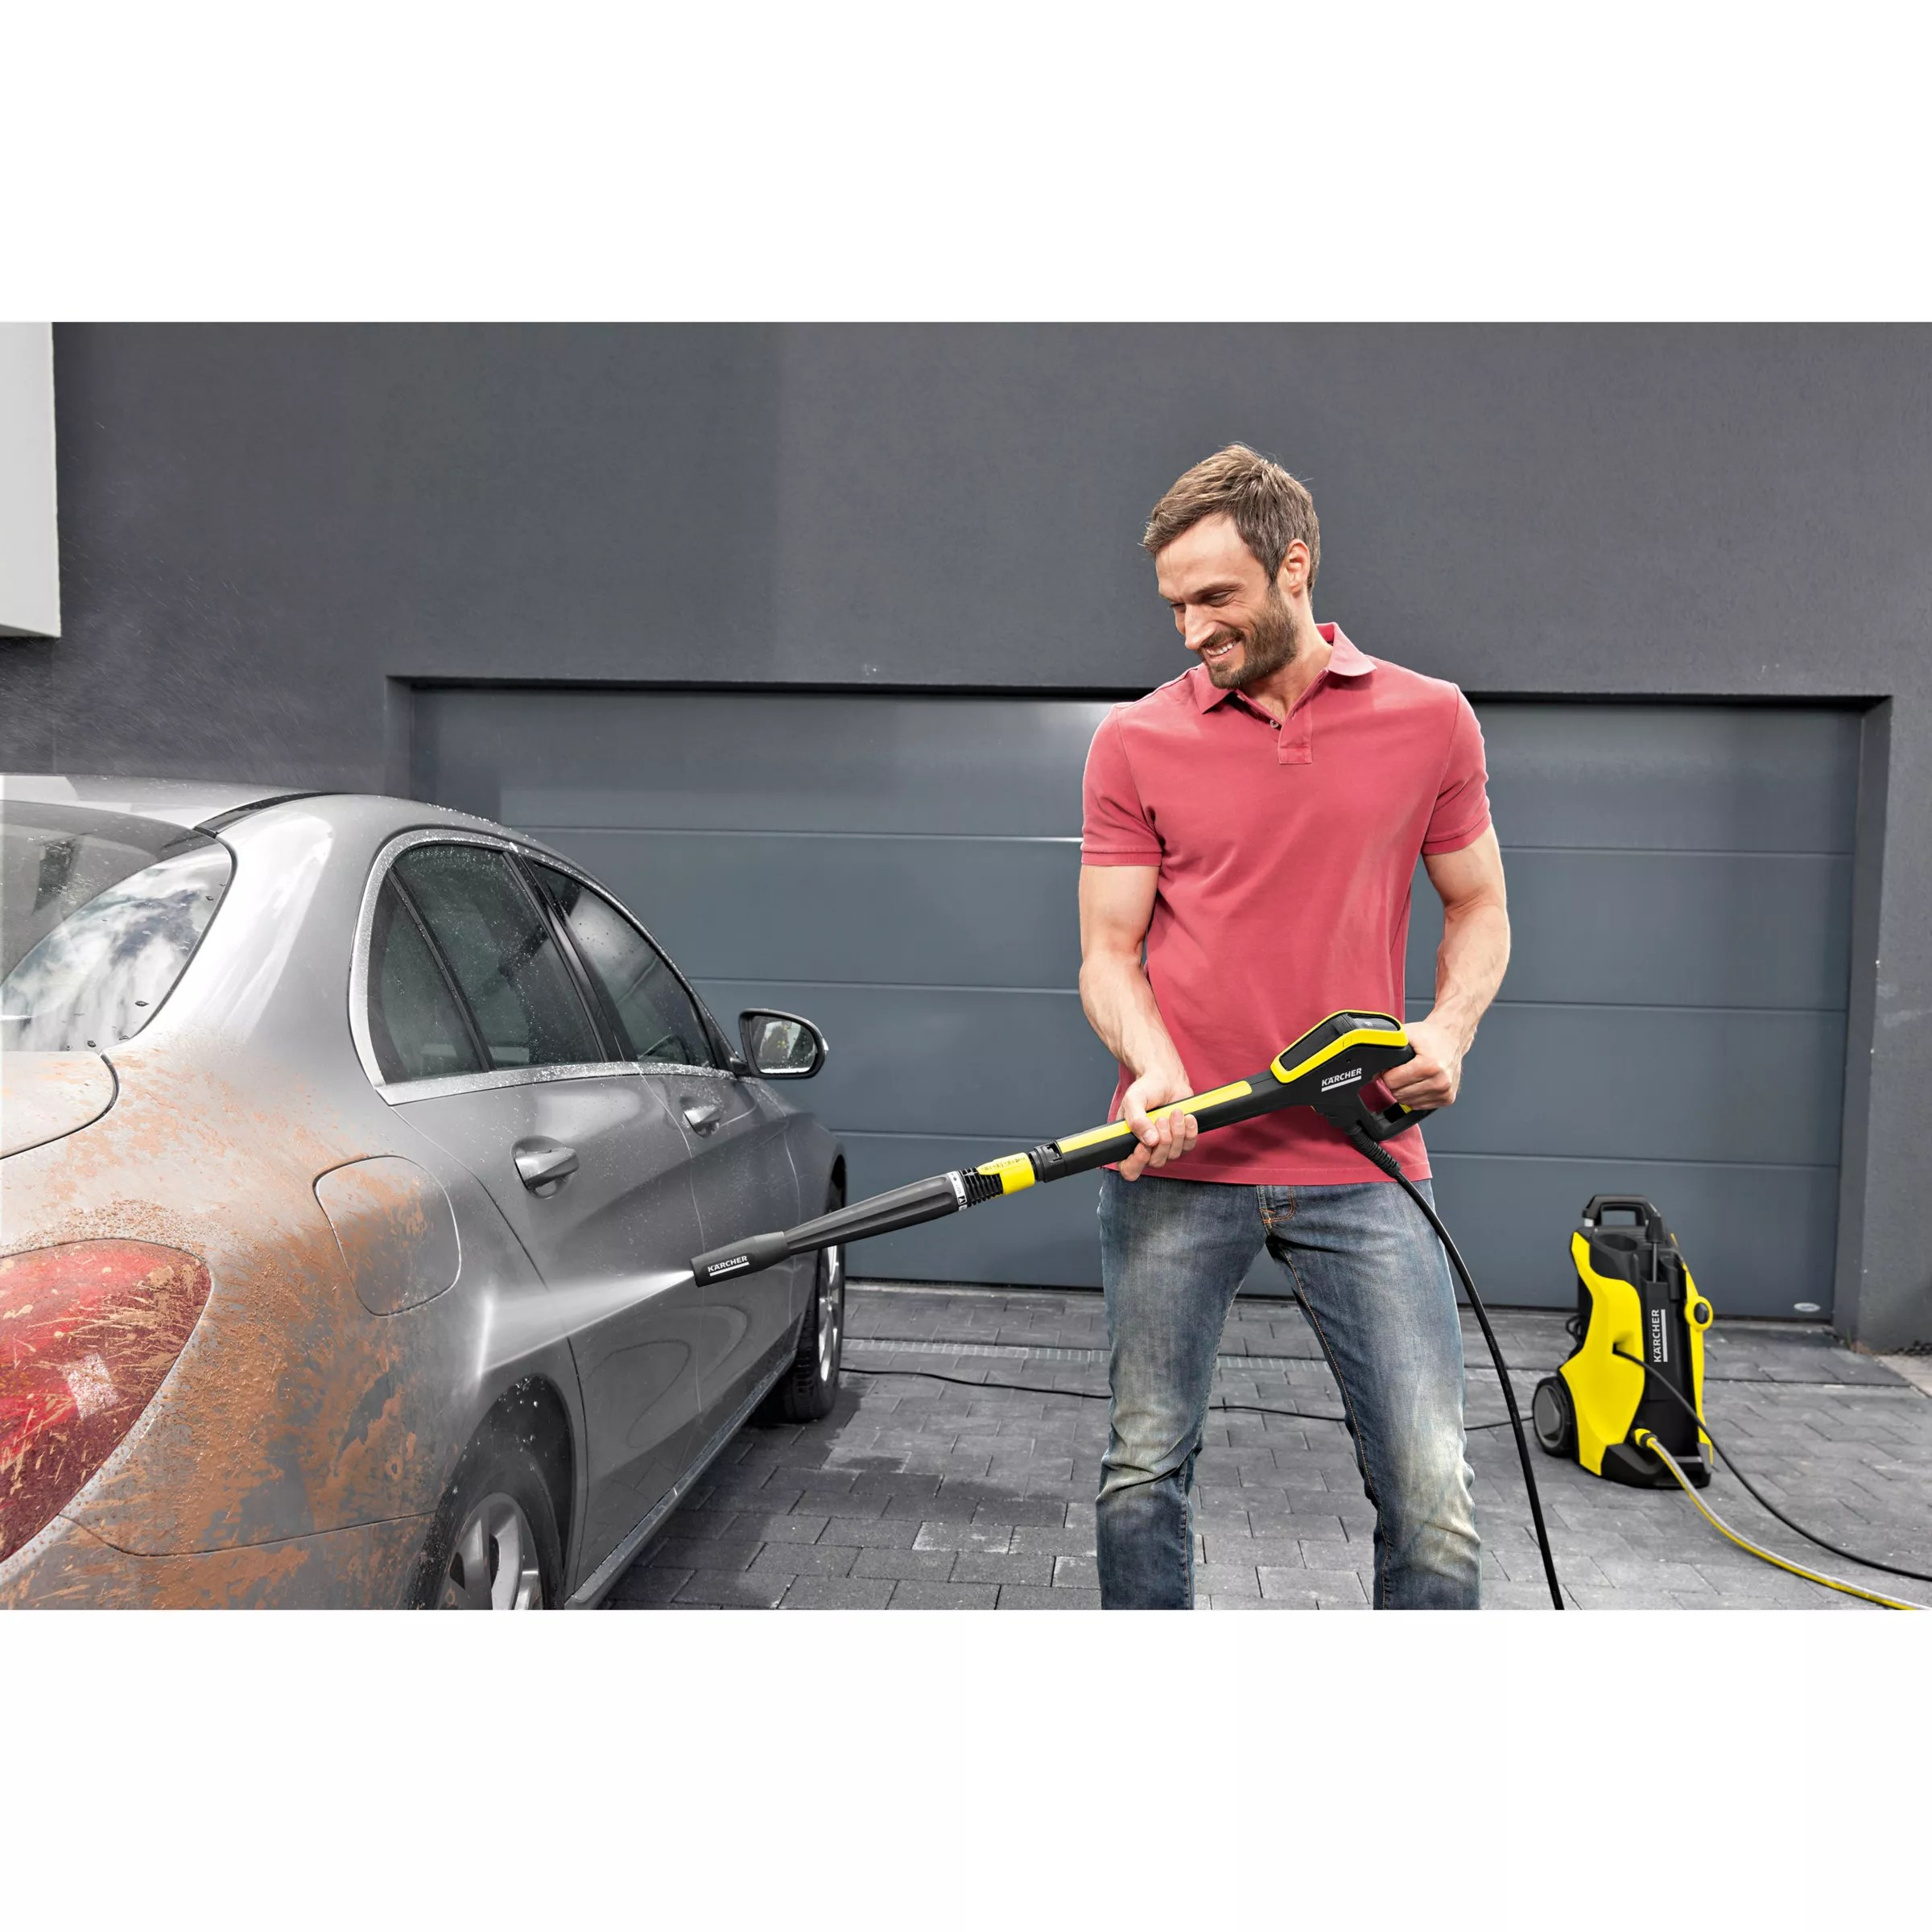 Karcher K7 Premium Full Control Home Kärcher K7 Premium Full Control Home Pressure Washer At John Lewis